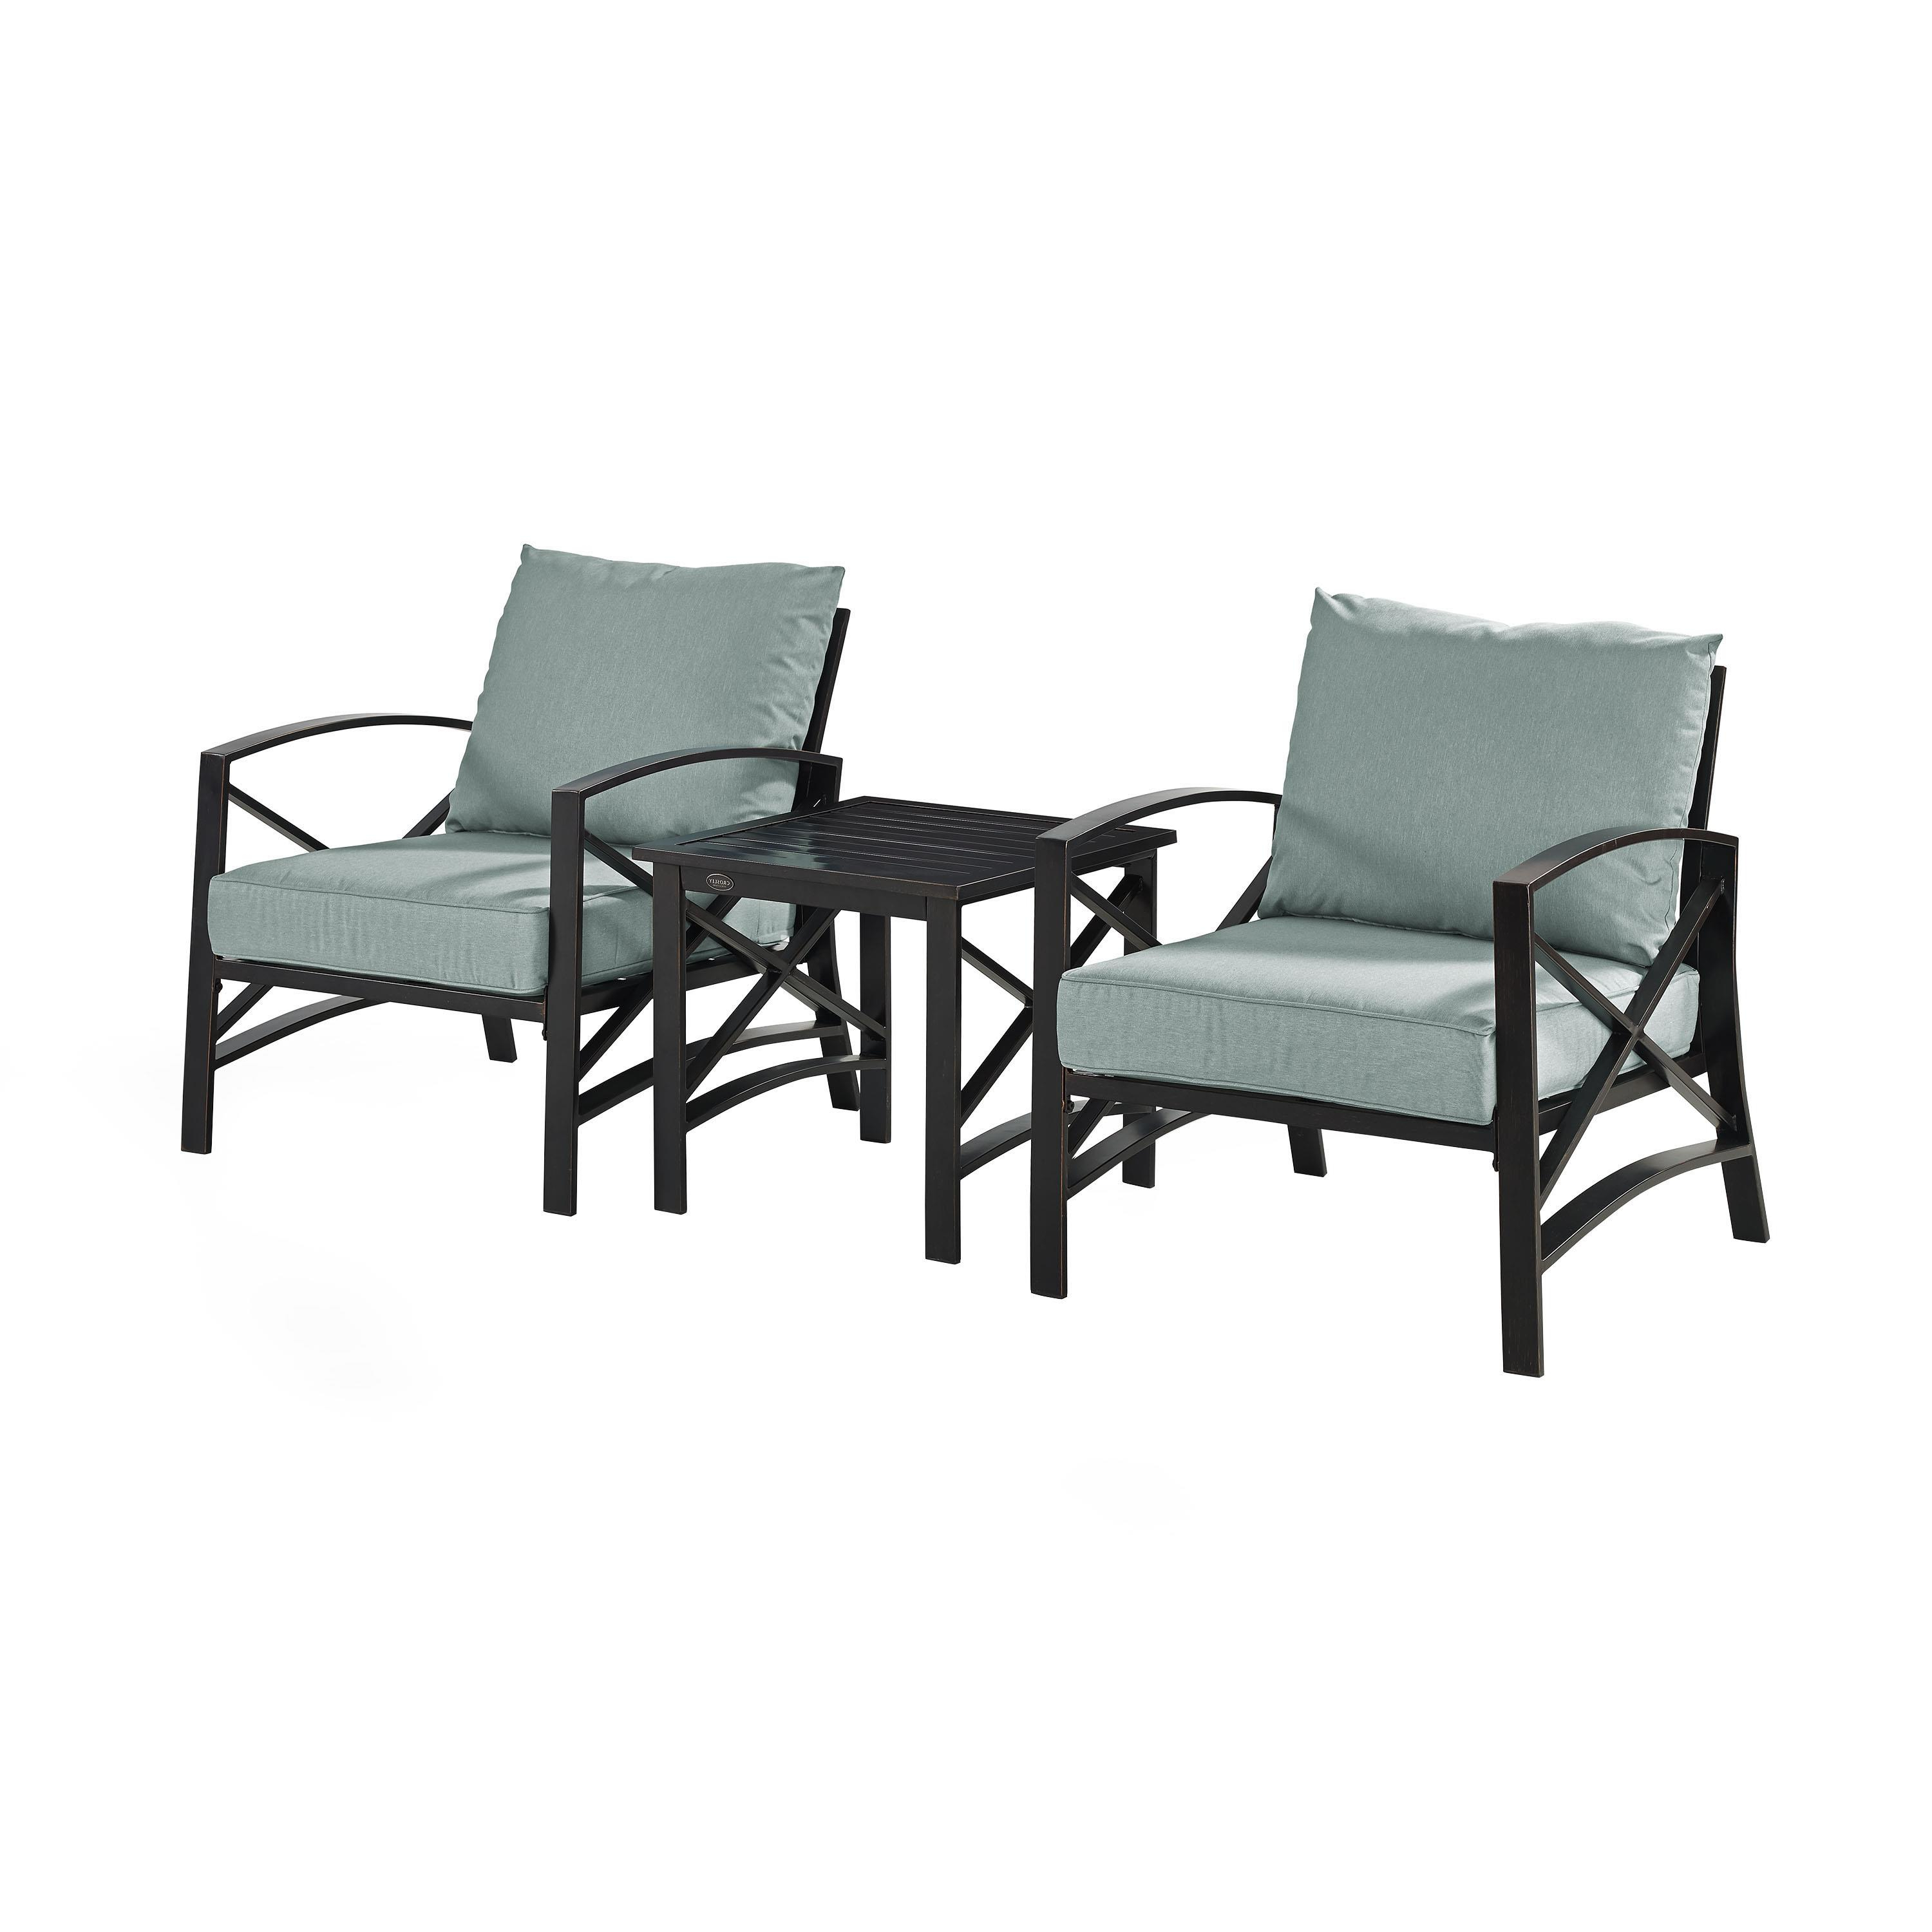 Crosley Kaplan 3 Piece Outdoor Seating Set – Oil Rubbed Bronze/mist Cushion 2 Chairs/side Table With Regard To Latest Chaise Lounge Chairs In Bronze With Mist Cushions (View 12 of 25)